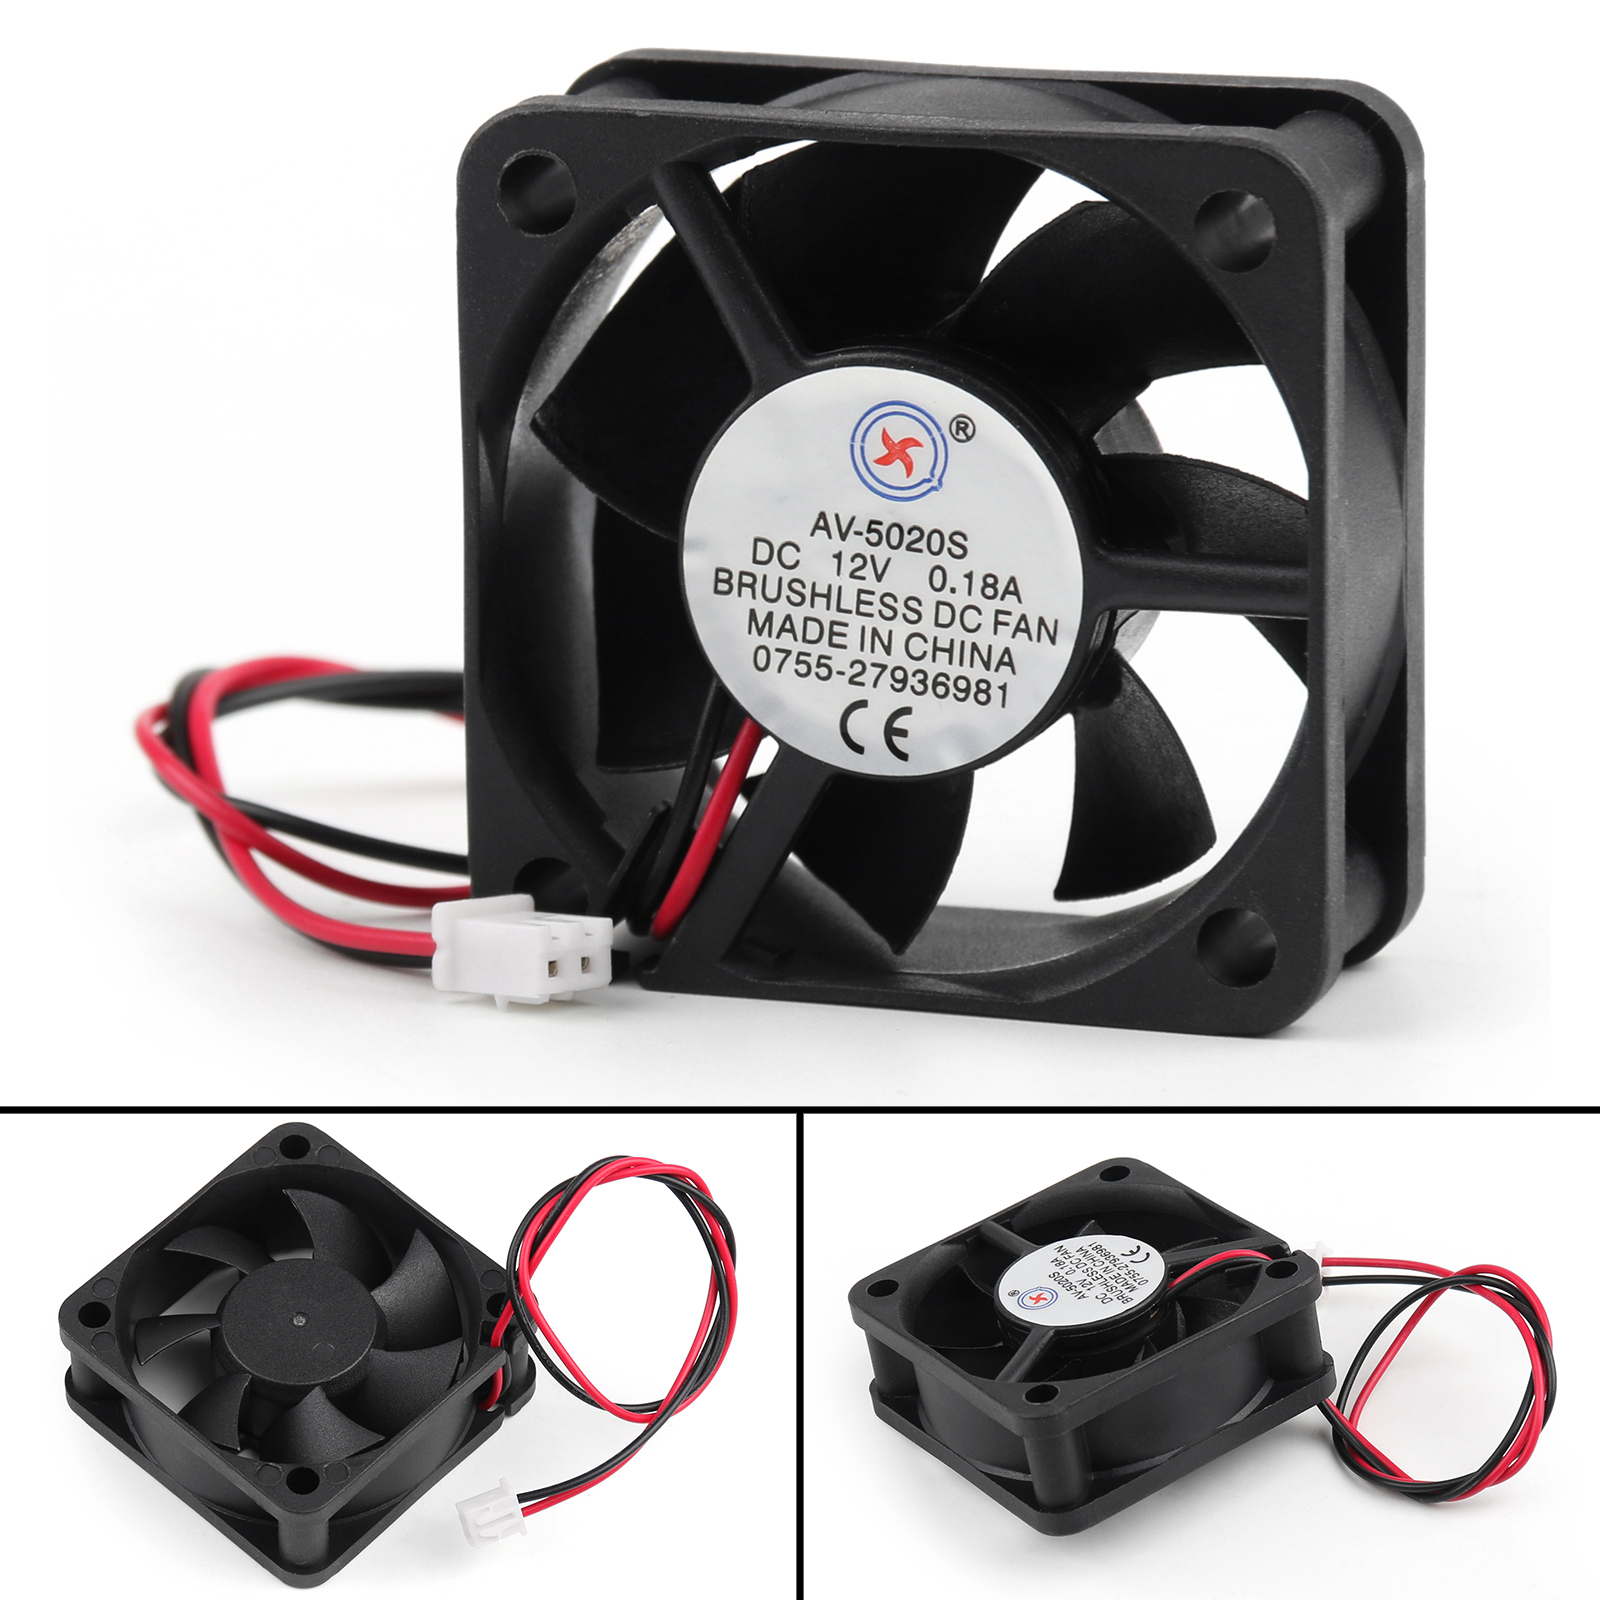 Details about DC Brushless Cooling PC Computer Fan 12V 0 18A 5020s  50x50x20mm 2 Pin Wire SA